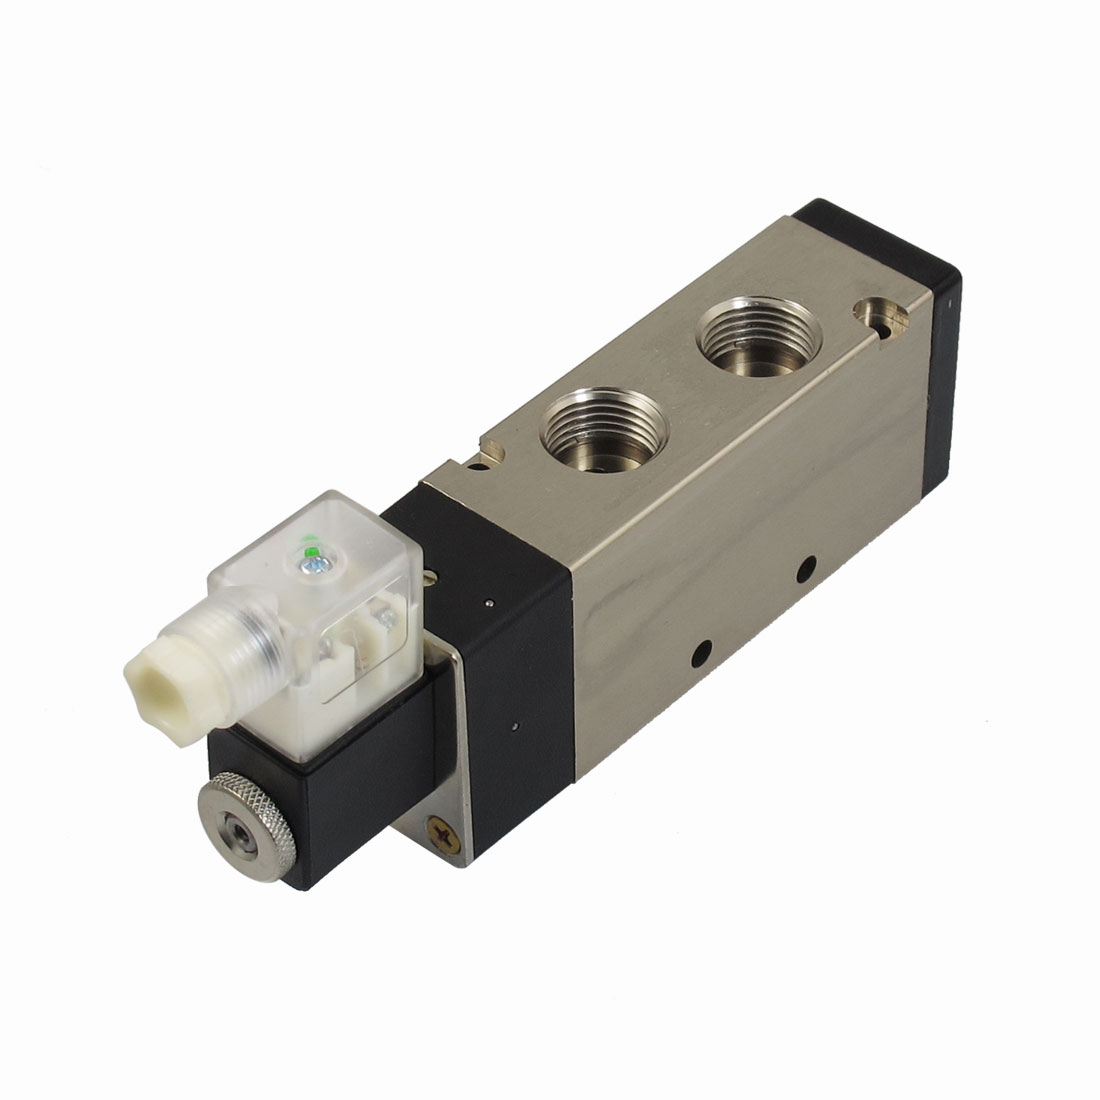 "DC 24V 3W 125mA 2 Position 5 Way G1/2"" Exhaust Pneumatic Electromagnetic Solenoid Valve"